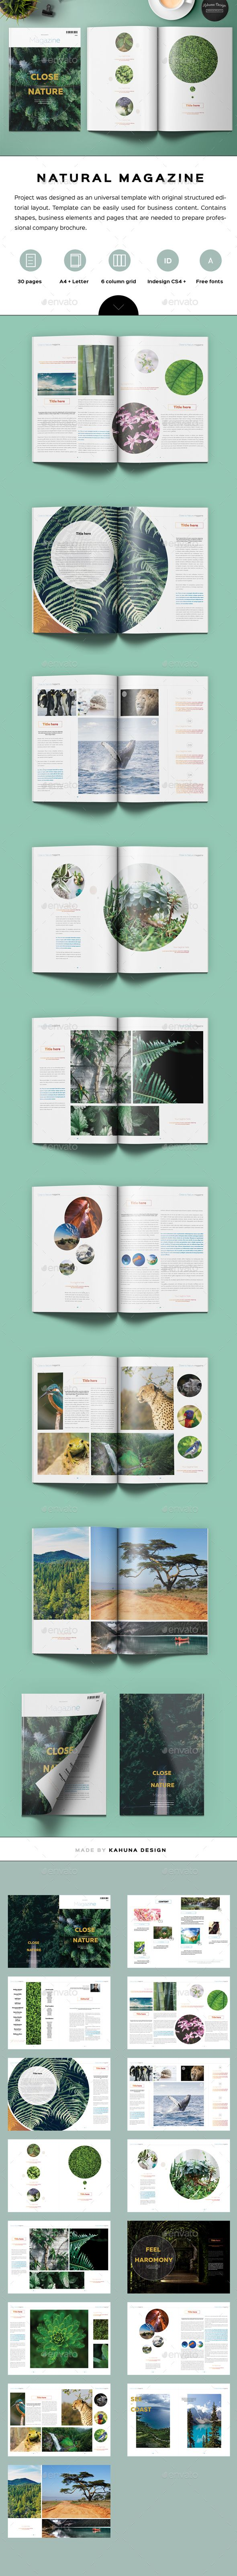 Natural Magazine  — InDesign Template #modern #lookbook • Download ➝ https://graphicriver.net/item/natural-magazine/18086670?ref=pxcr